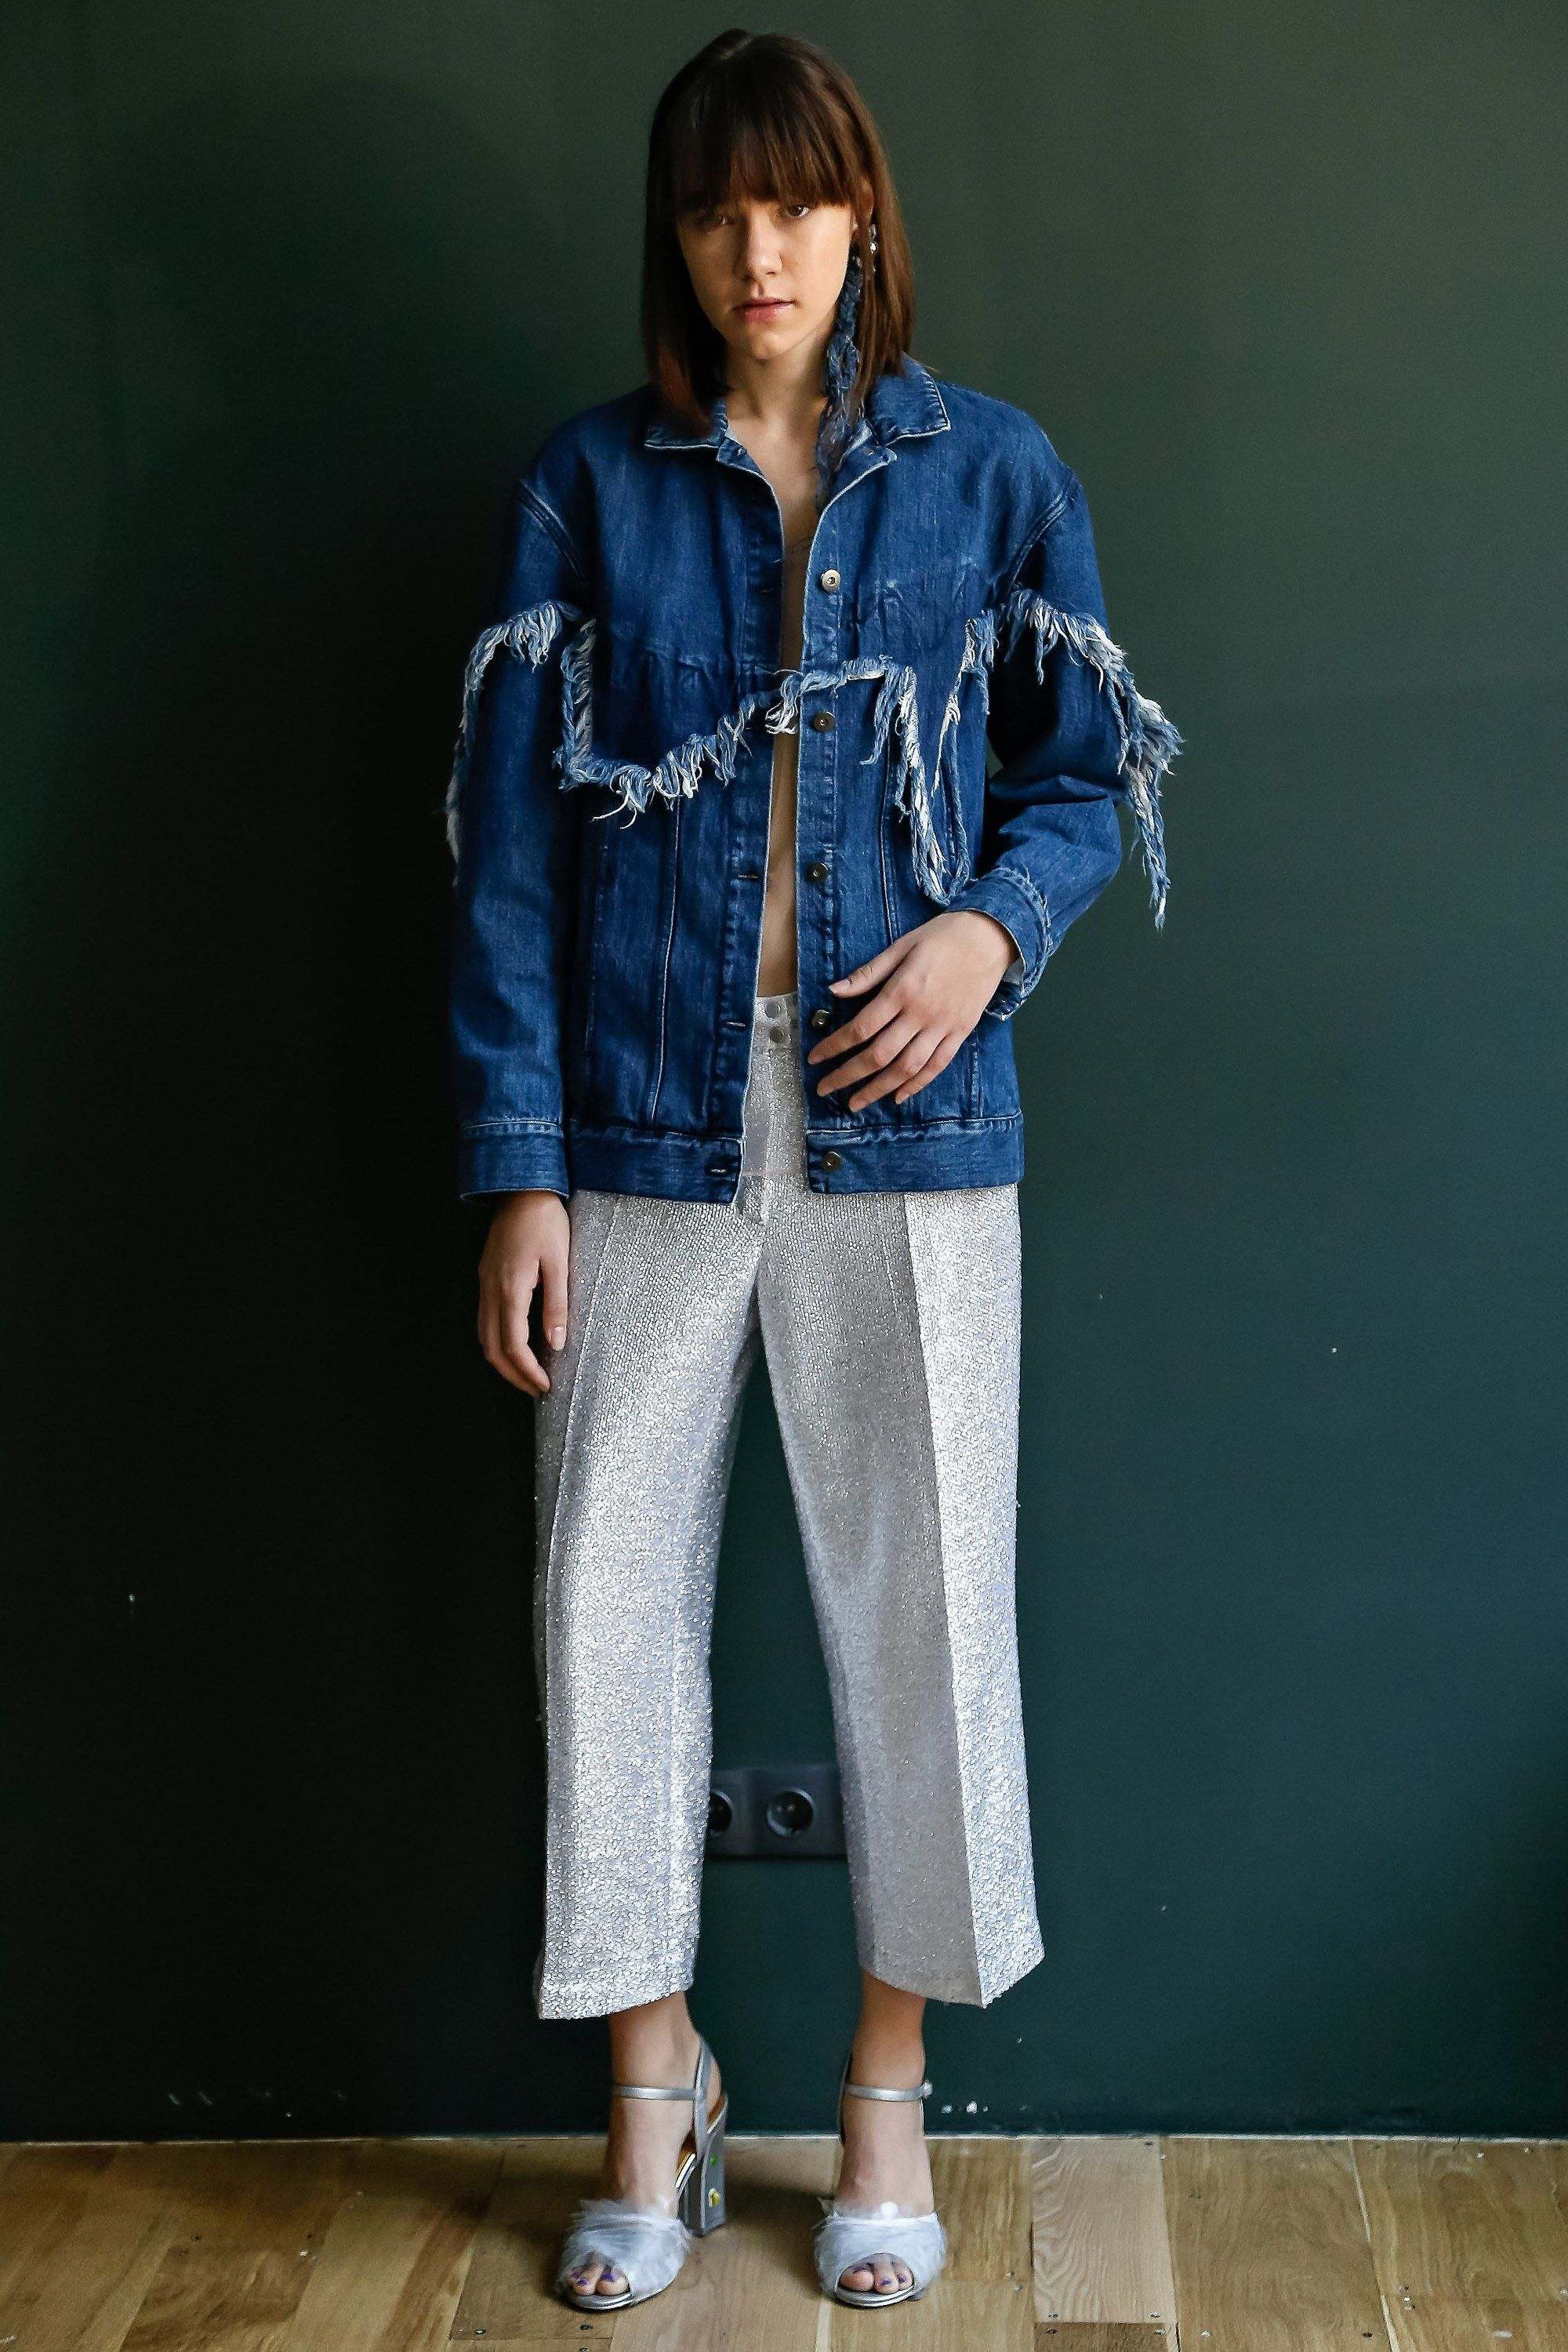 Fringed denim from the Bekh Spring 2017 Collection at Kiev Fashion Week.